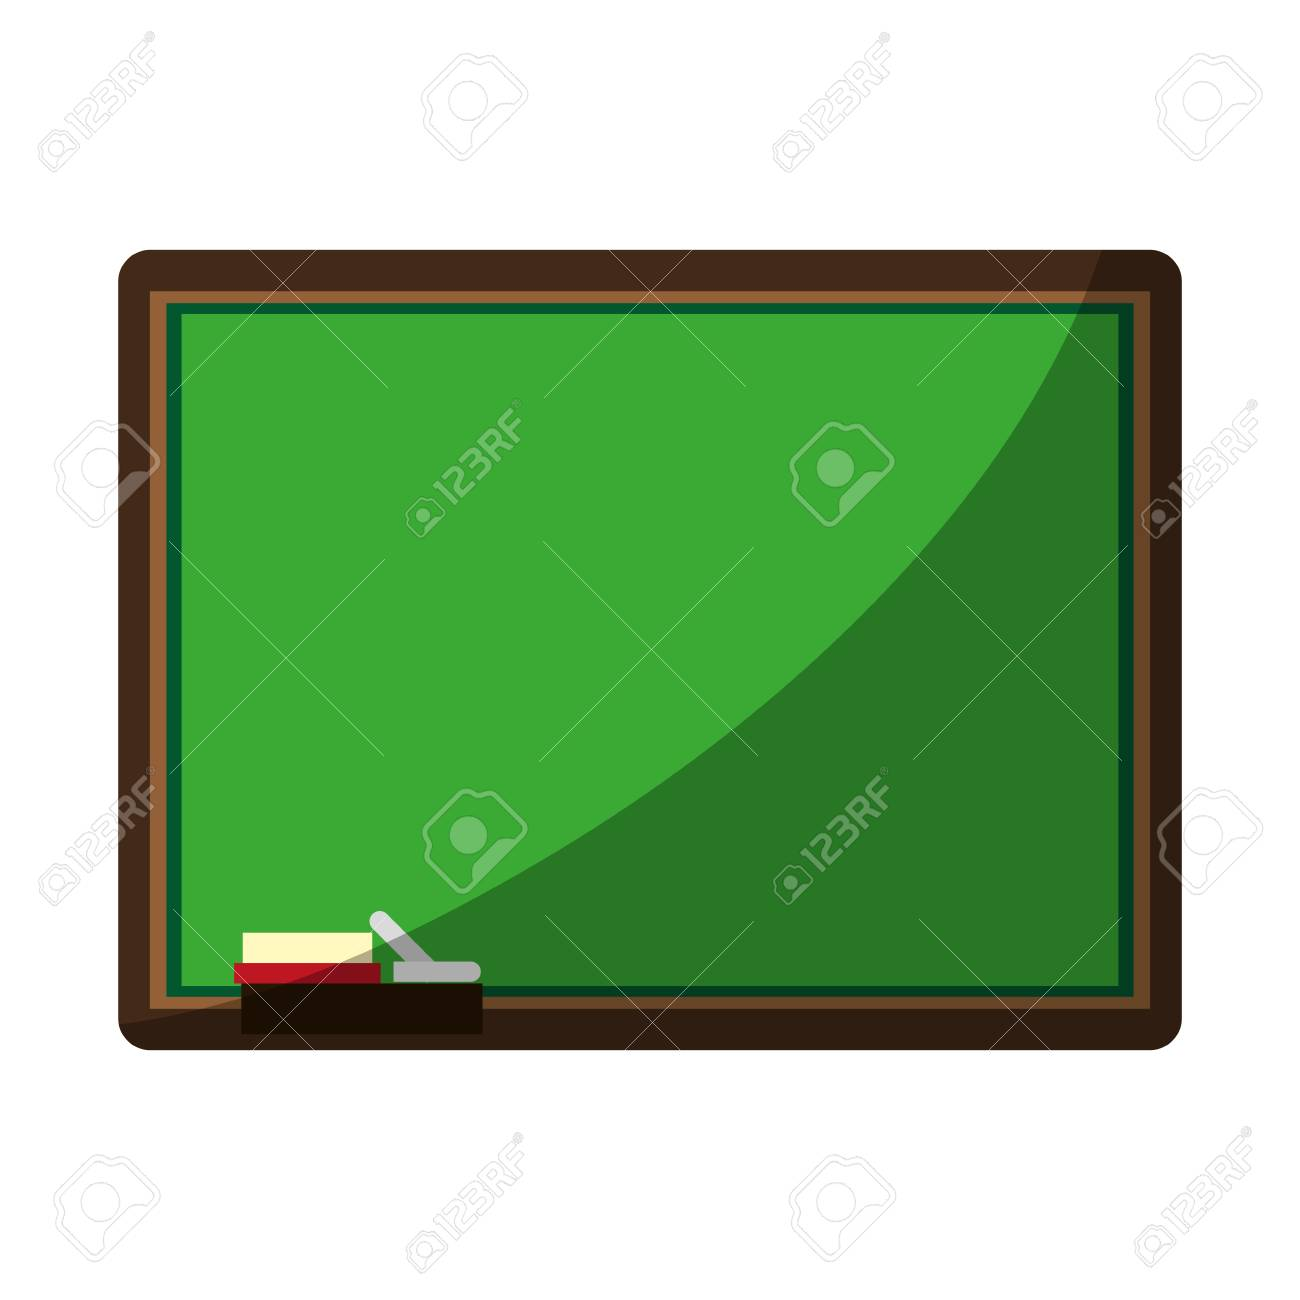 Chalk Board With School Supply Icon Image Vector Illustration - Pool table chalk board